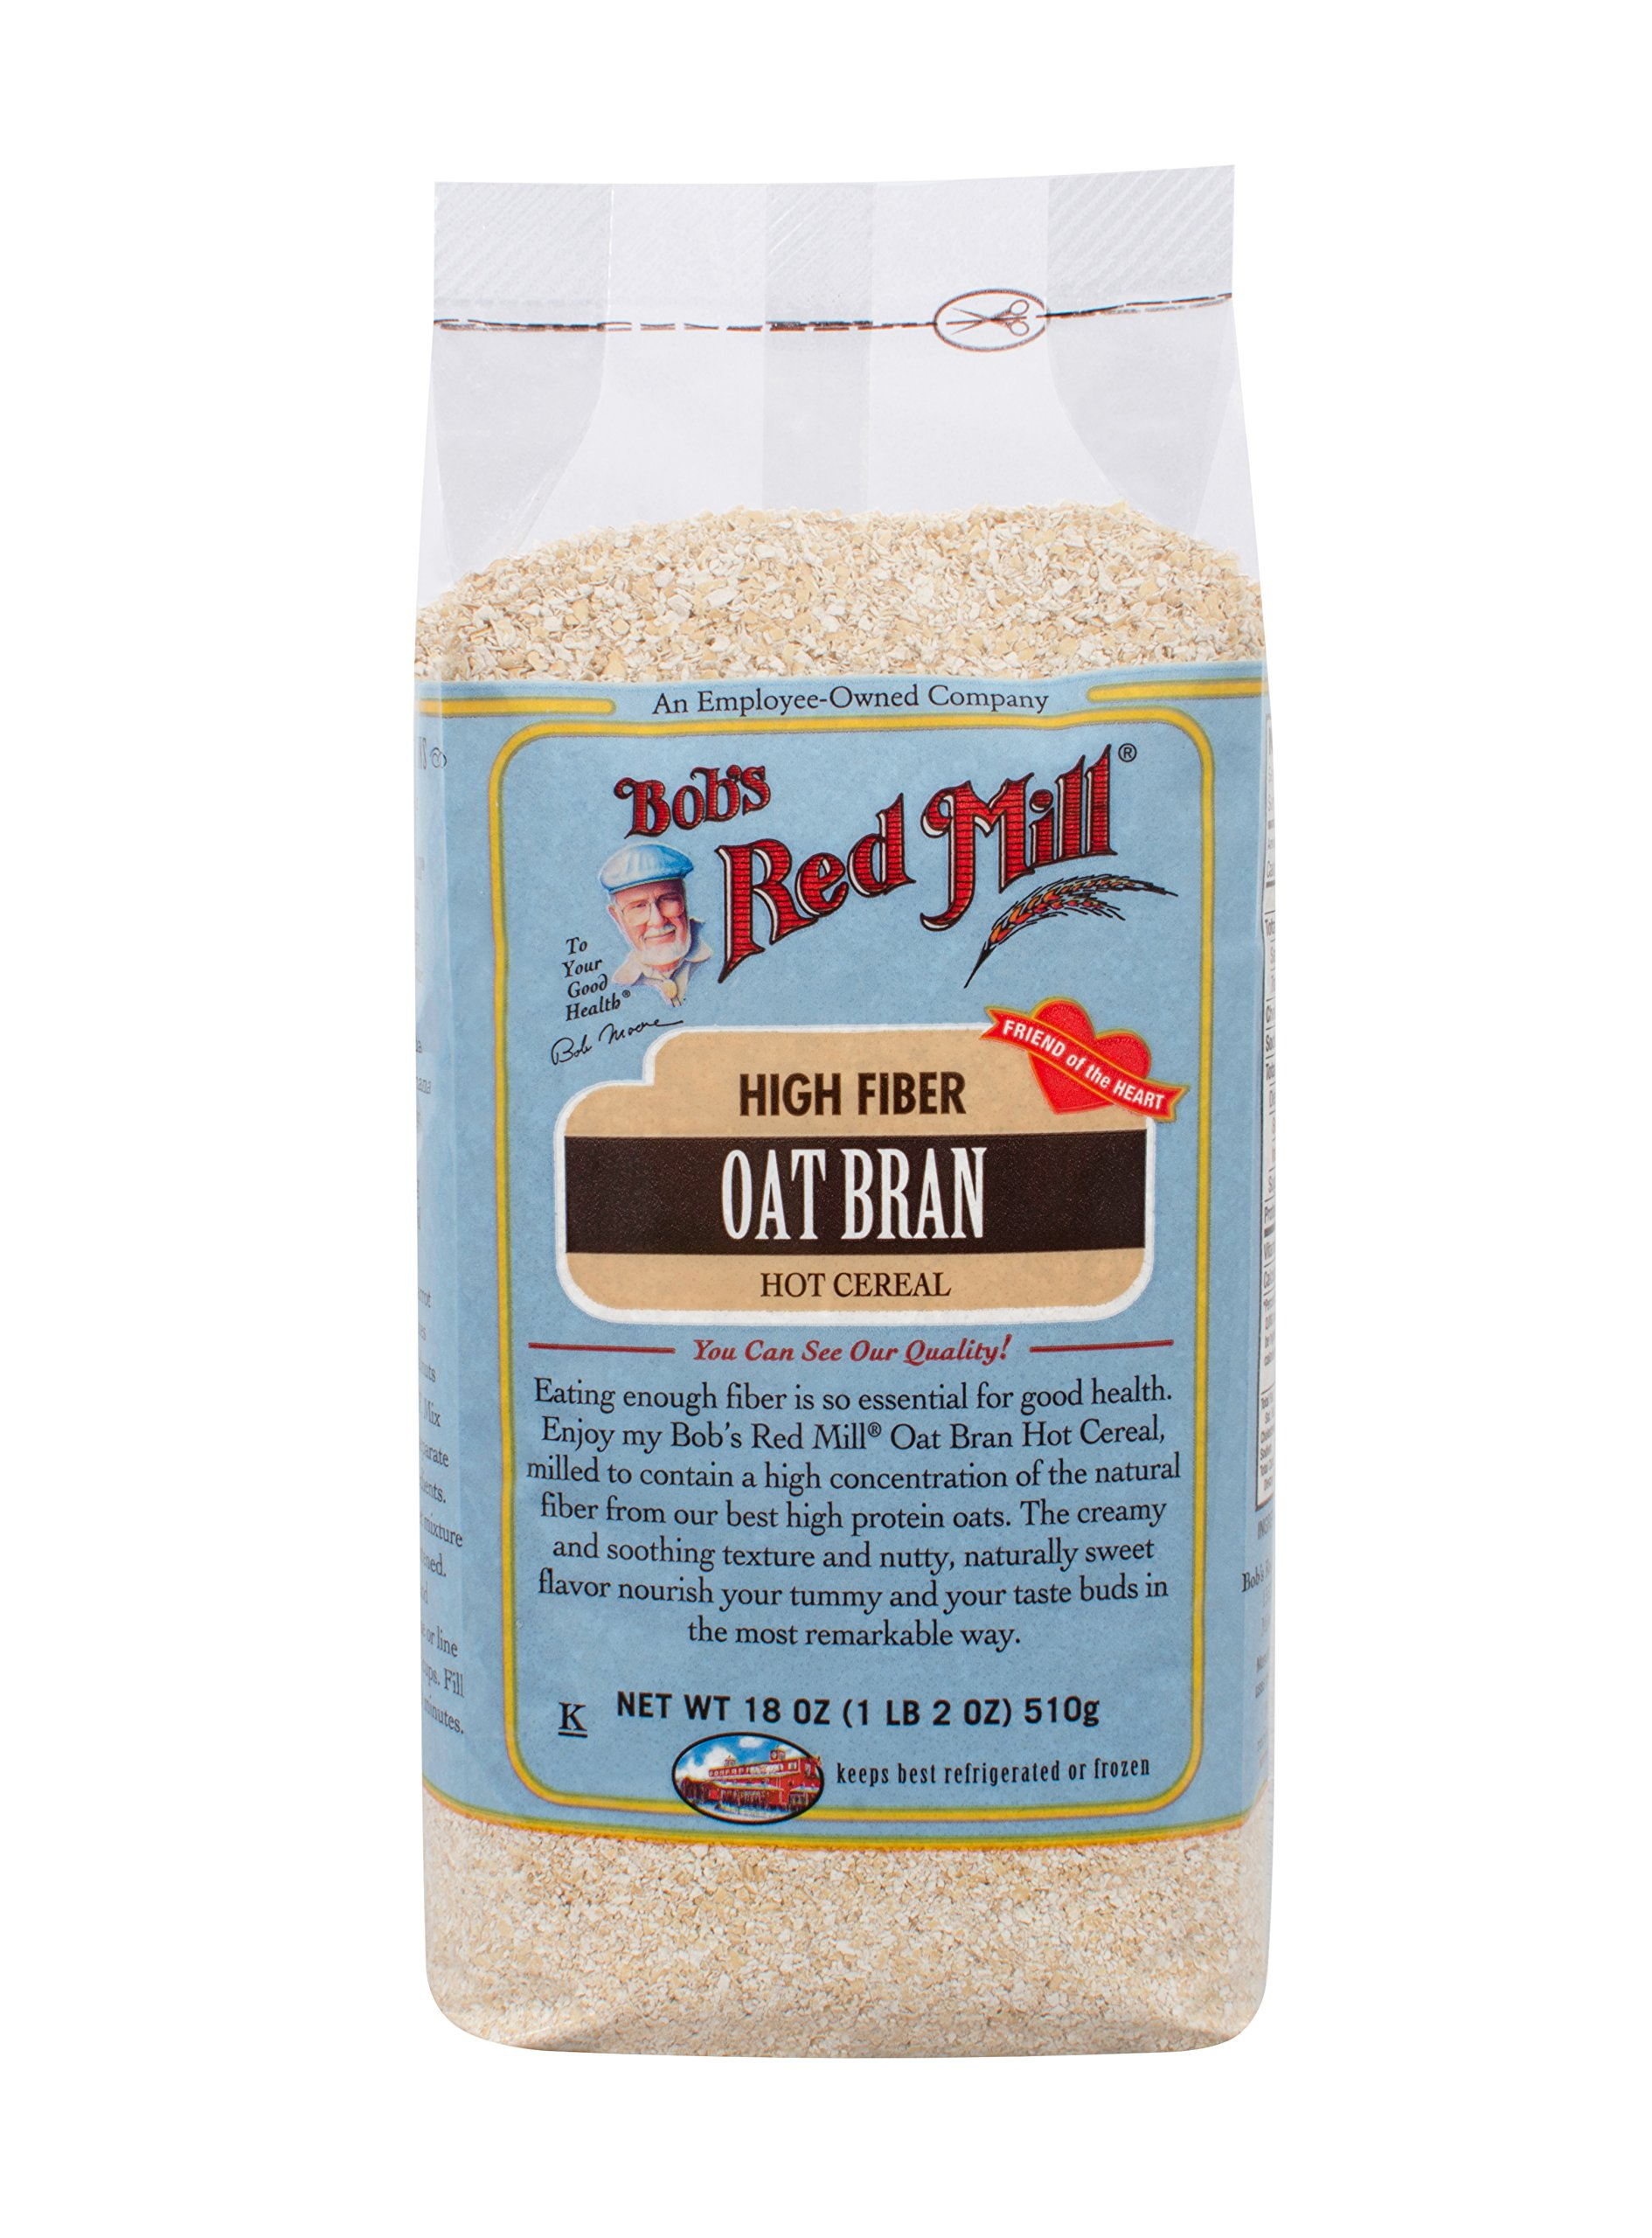 Bob's Red Mill Oat Bran Cereal, 18 oz